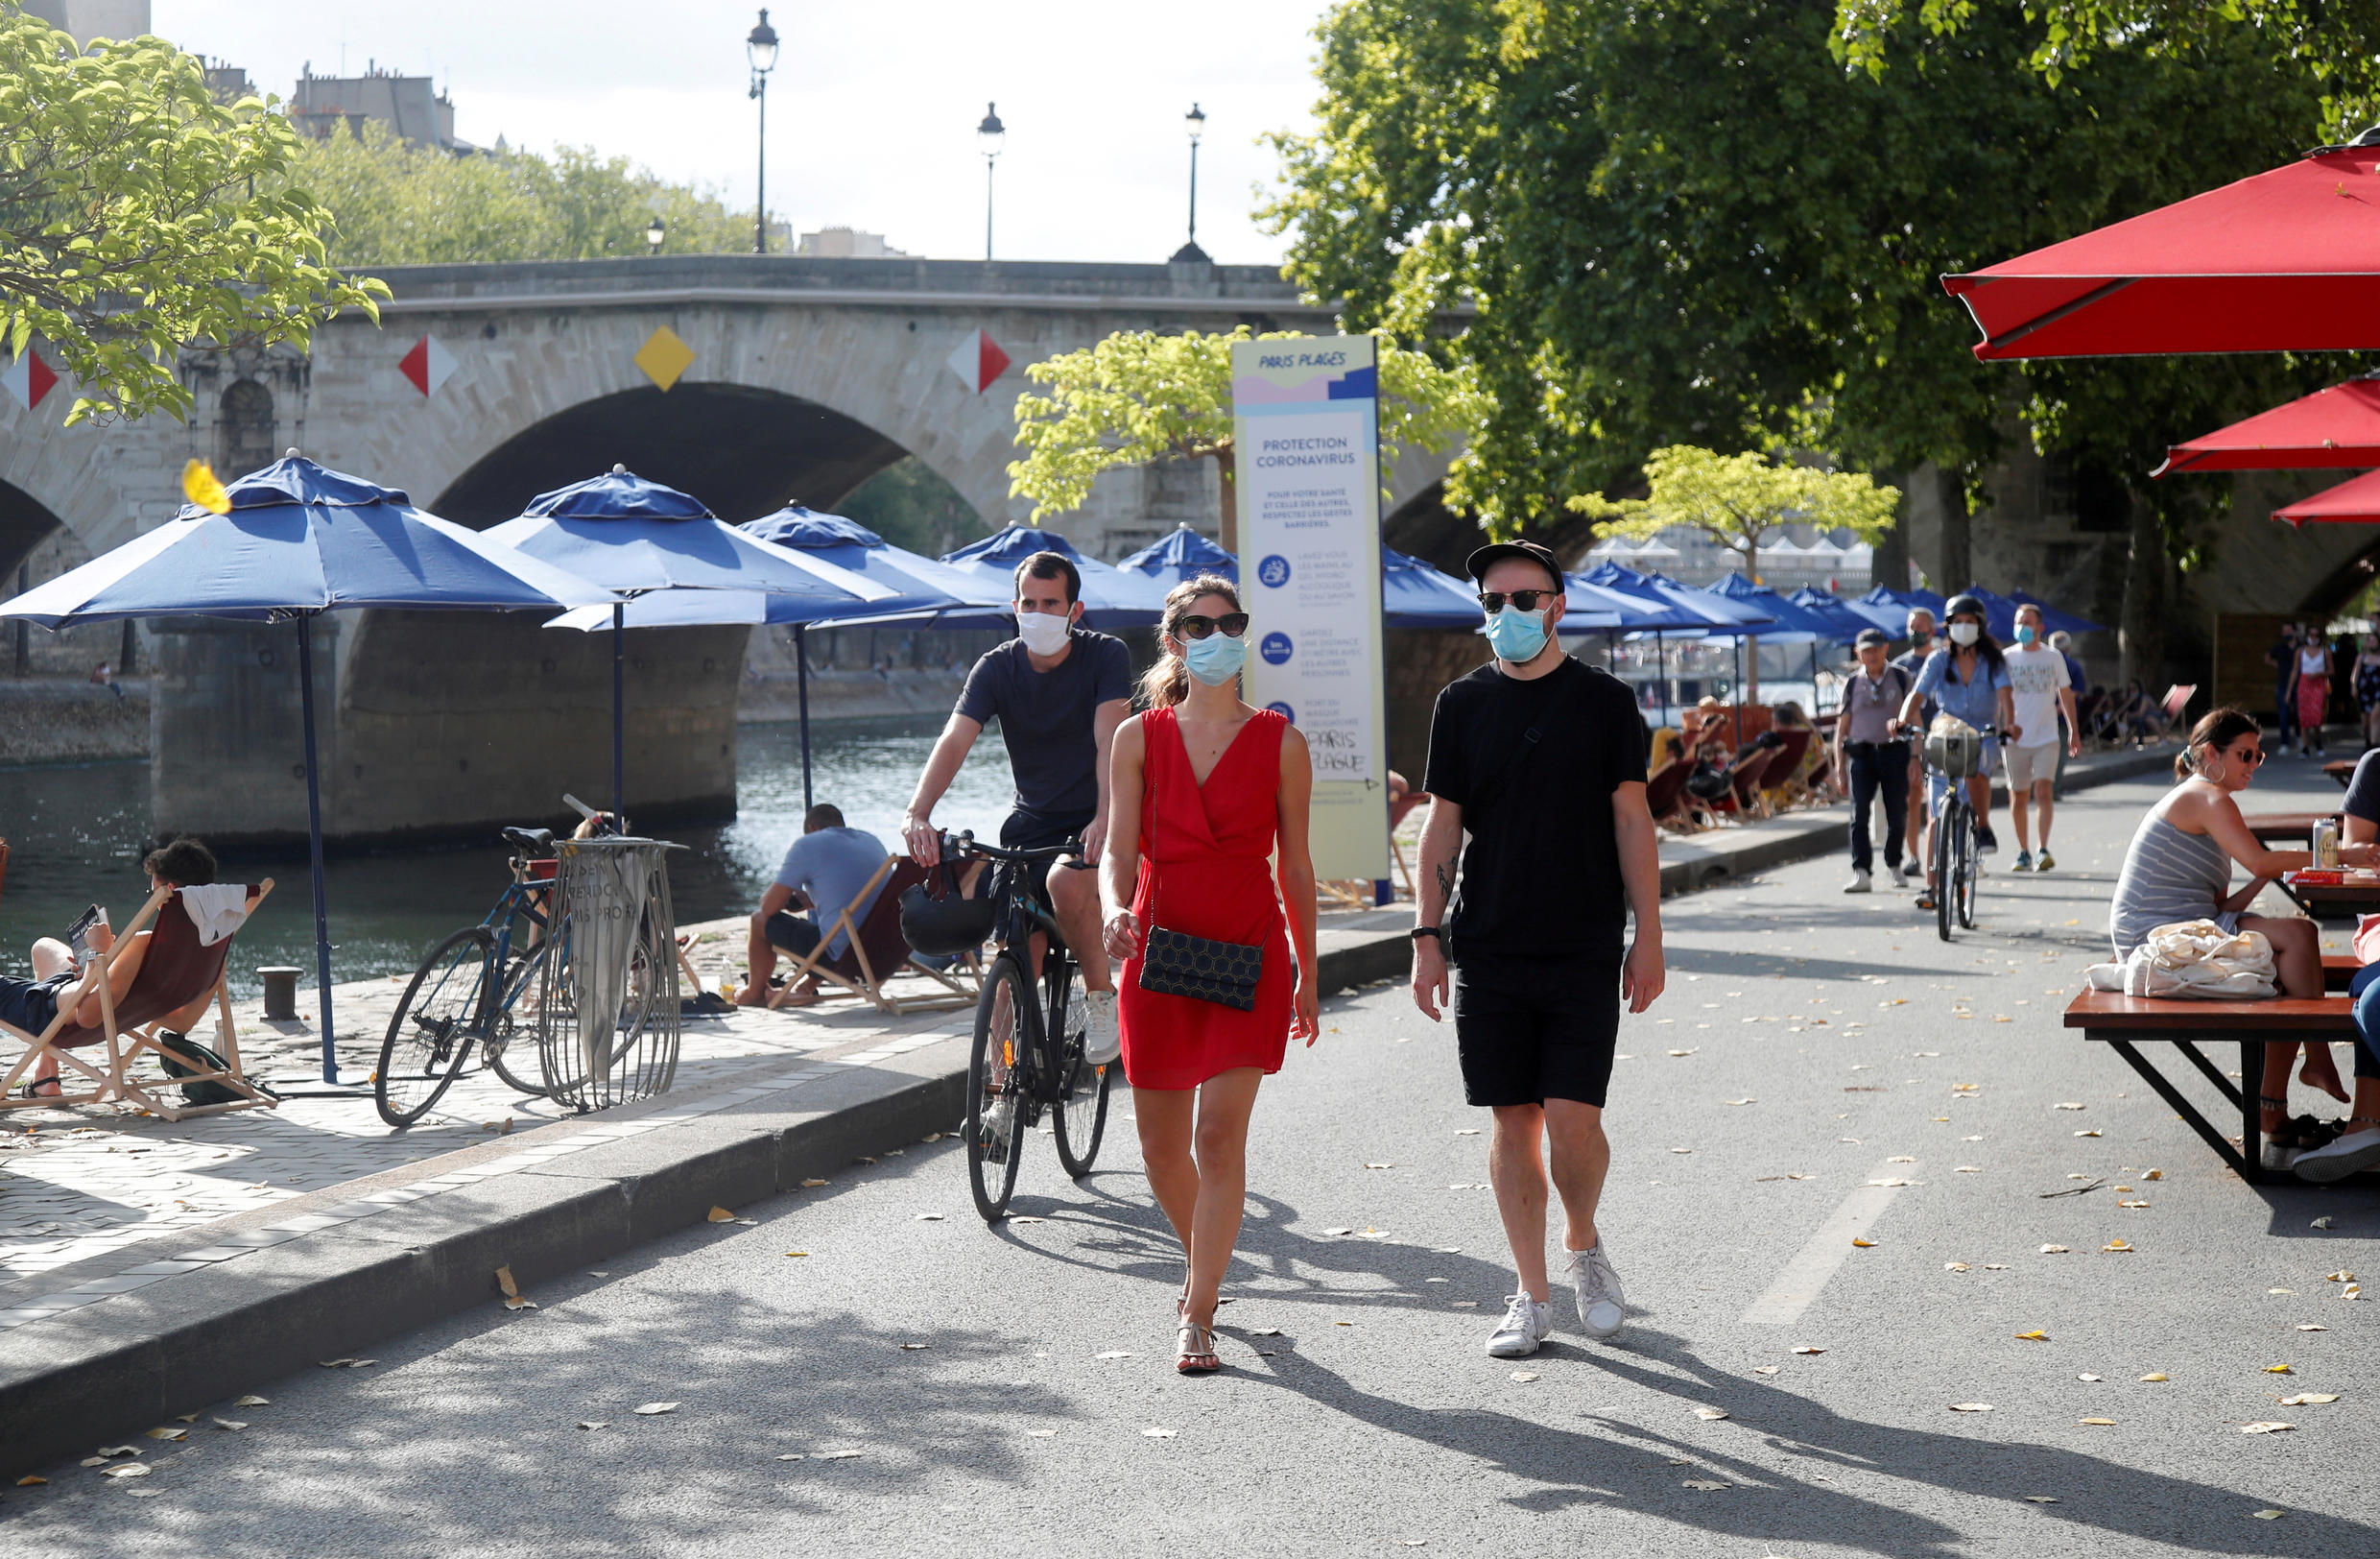 Pedestrians wearing protective face masks walk along the Seine river banks, as France reinforces mask-wearing as part of efforts to curb a resurgence of Covid-19 across the country, Paris, France, August 15, 2020.